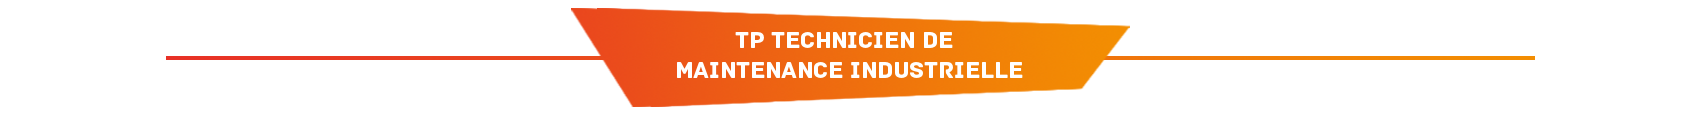 TP Technicien de maintenance industrielle